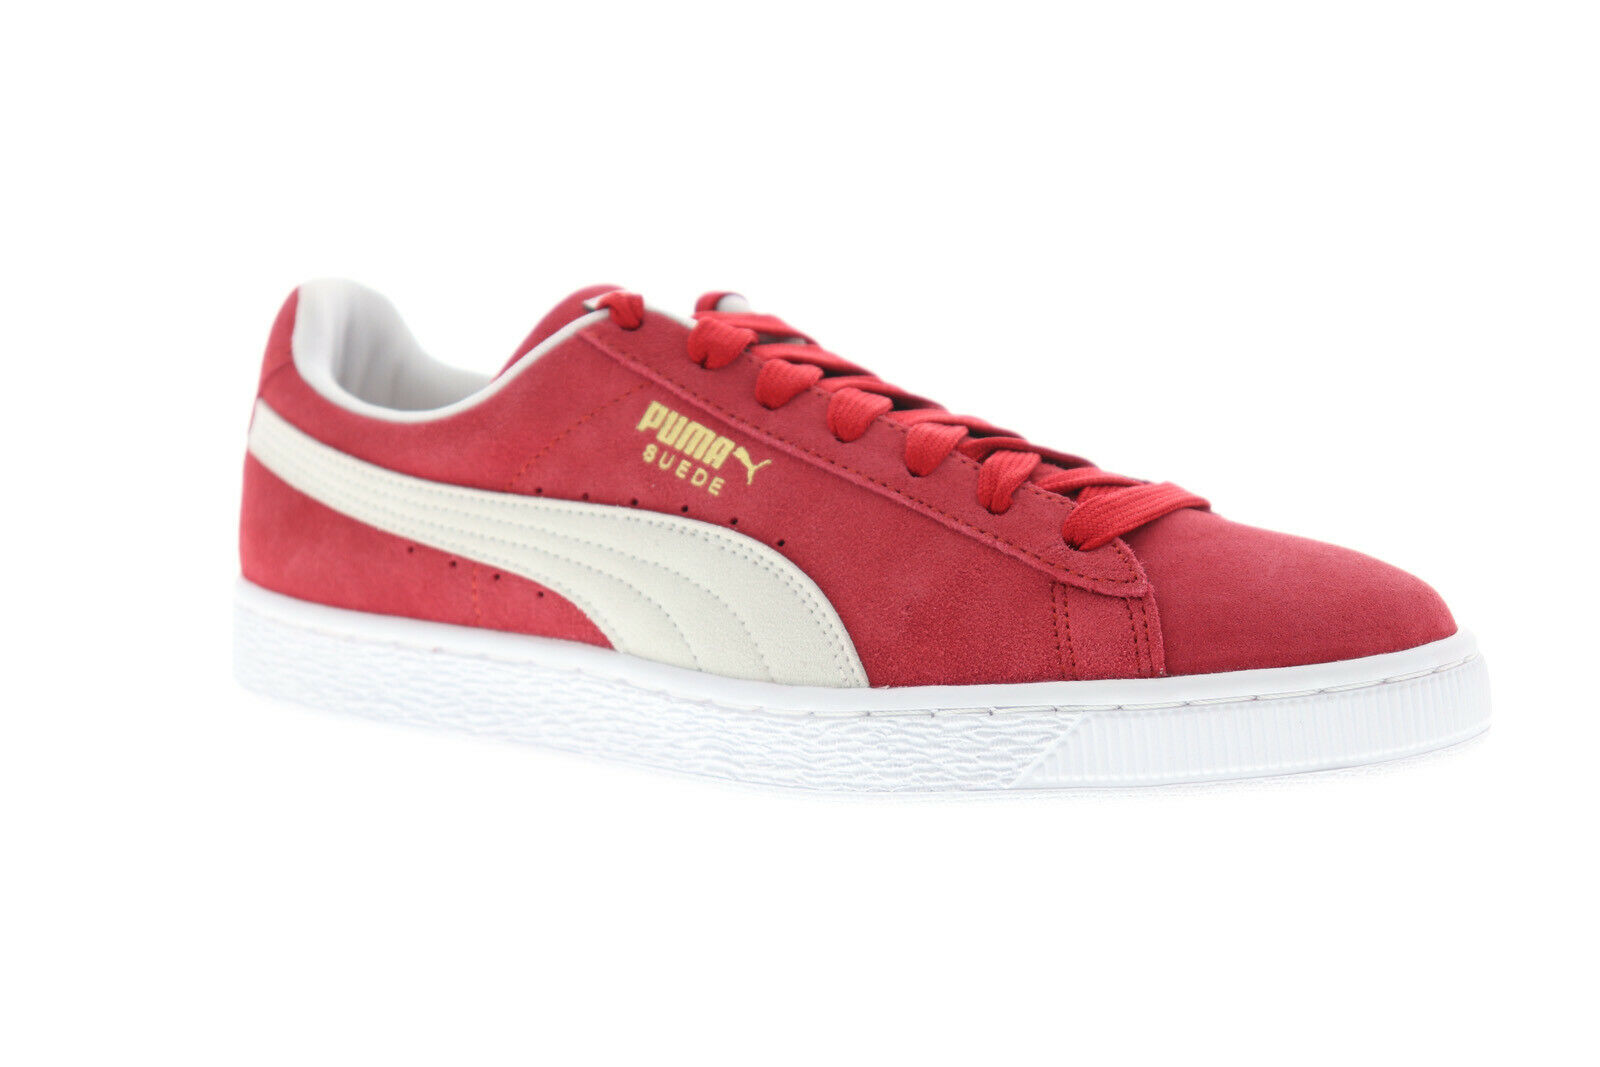 Puma Suede Classic+ 35263405 Mens Red Lace Up Low Top Sneakers Shoes